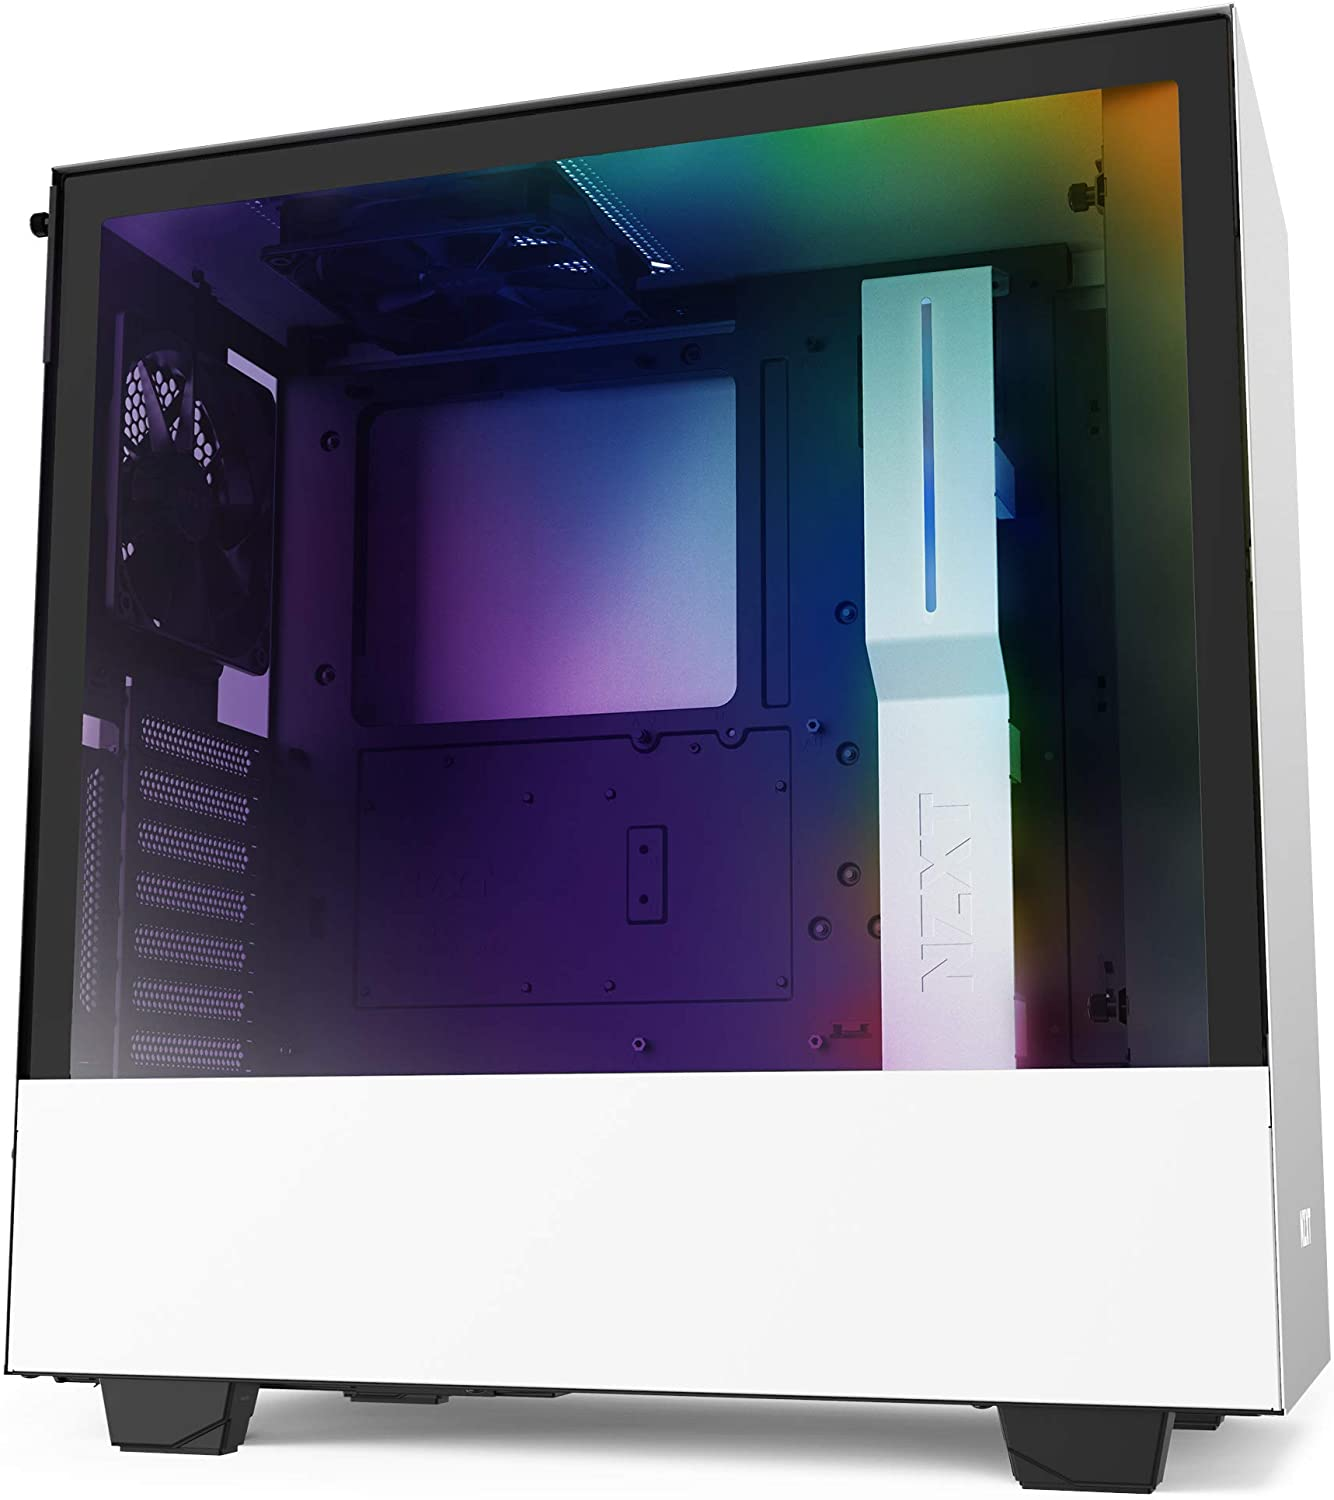 8 PC Case - Best $1500 PC Build 2020